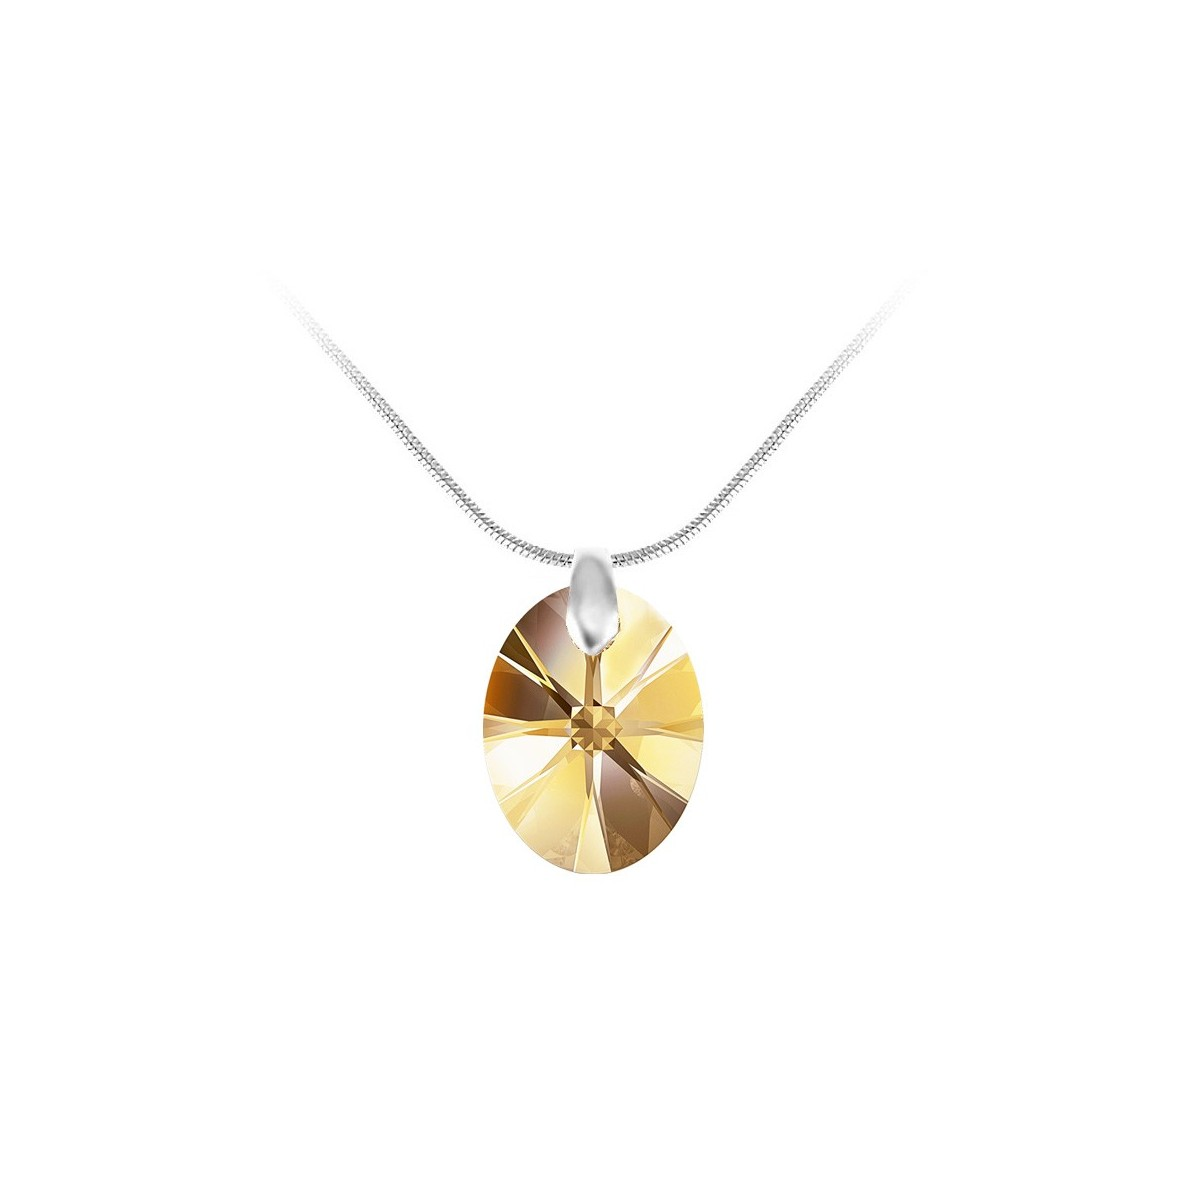 Collier argenté et goutte jaune So Charm made with Crystal from Swarovski